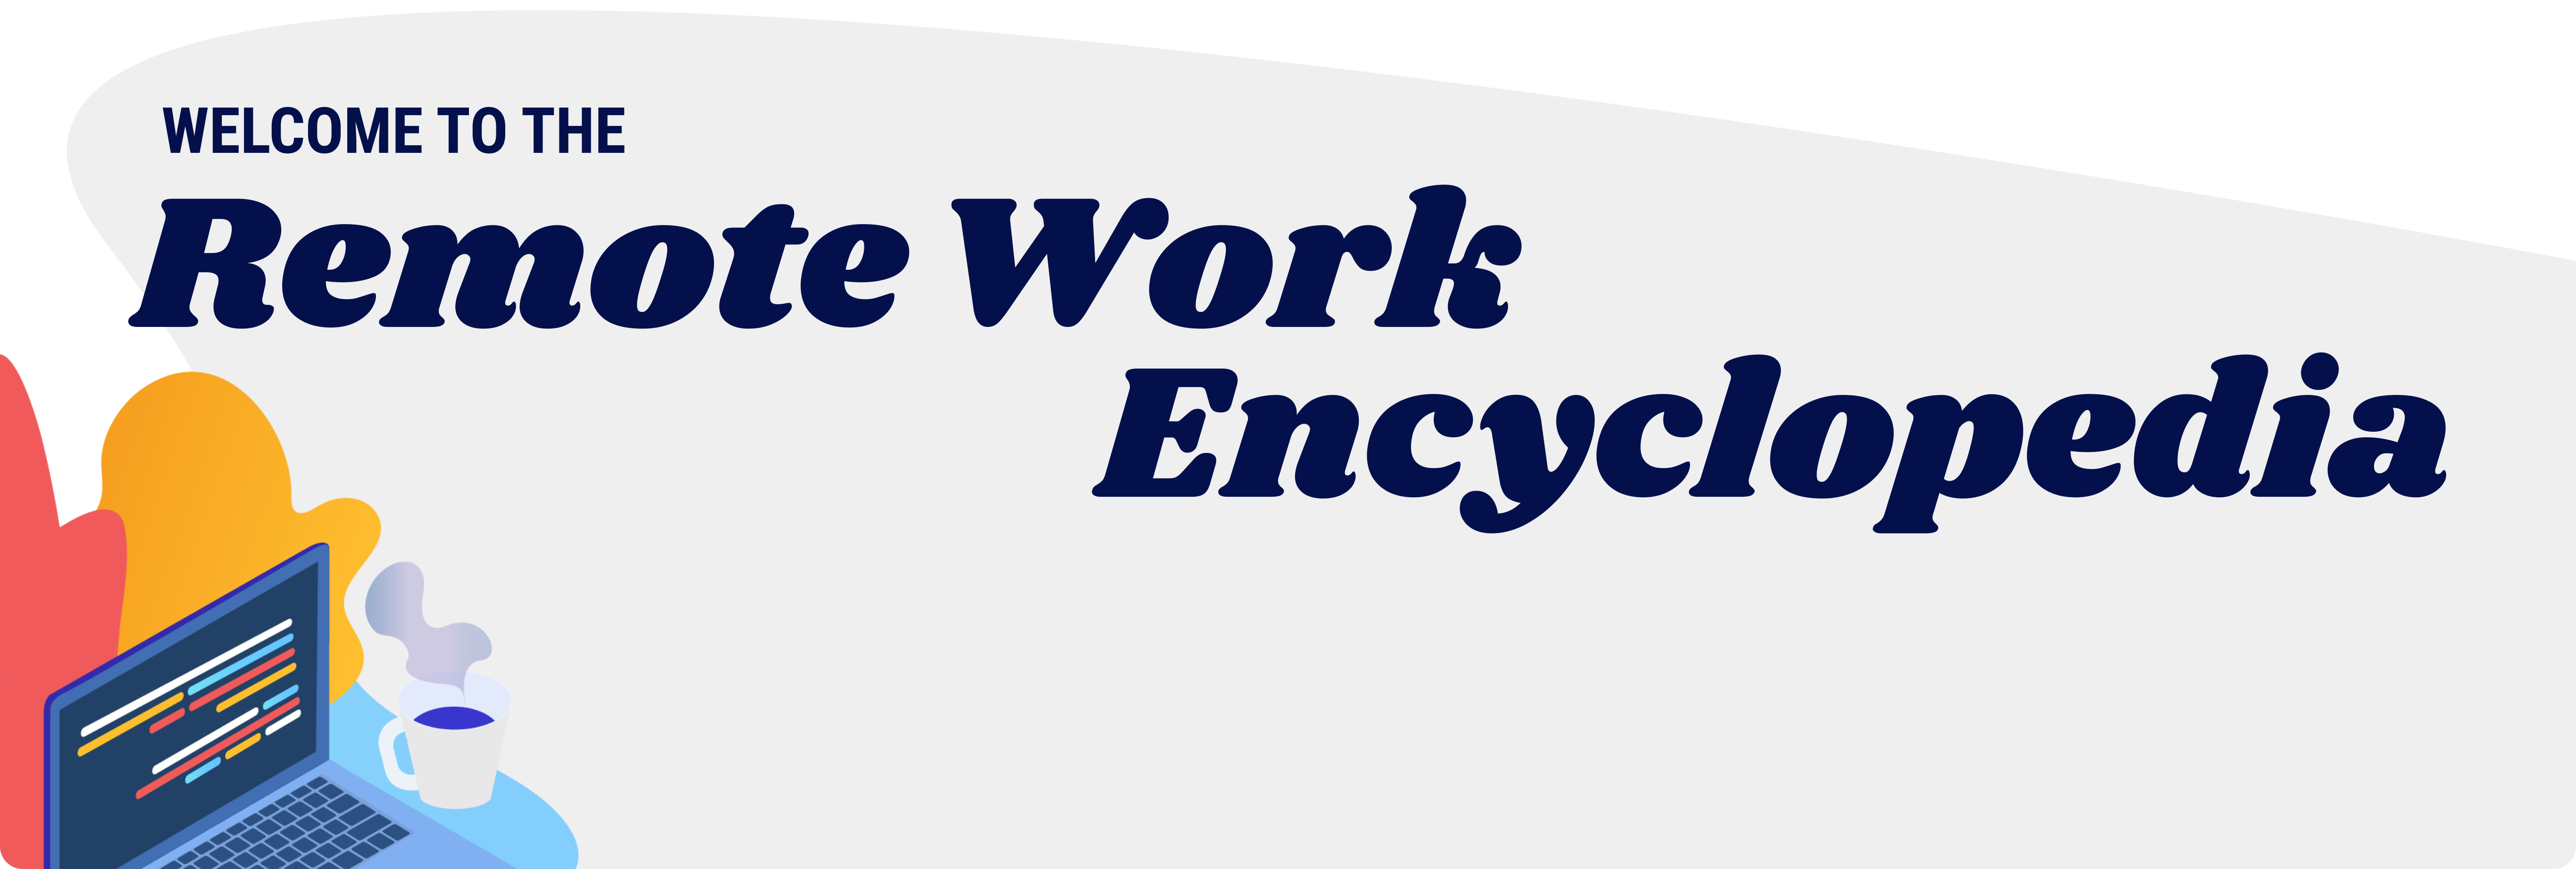 Welcome to the Remote Work Encyclopedia, written by and for the moonlightwork.com community